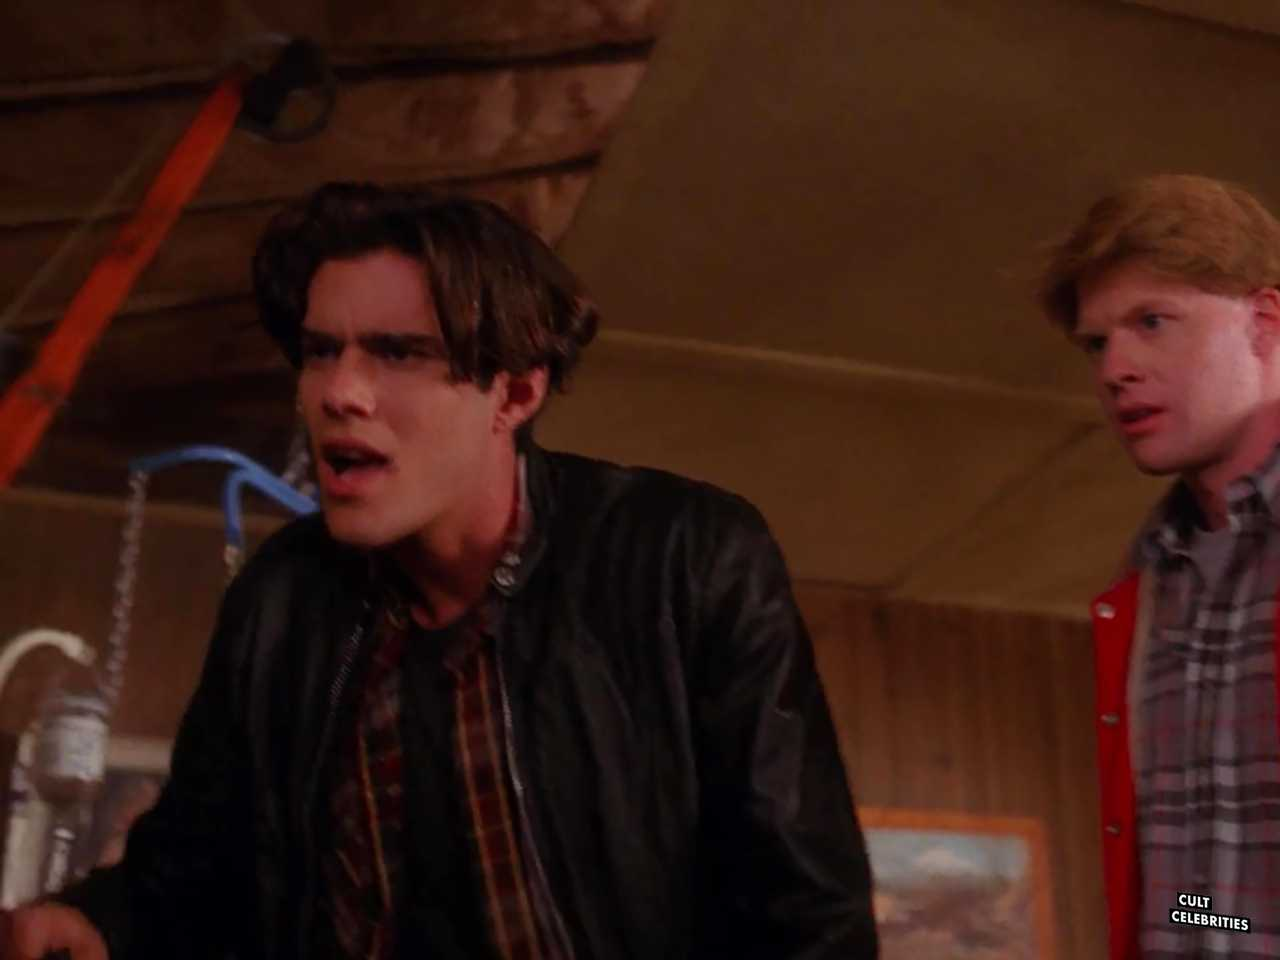 Gary Hershberger and Dana Ashbrook in Twin Peaks (1990)